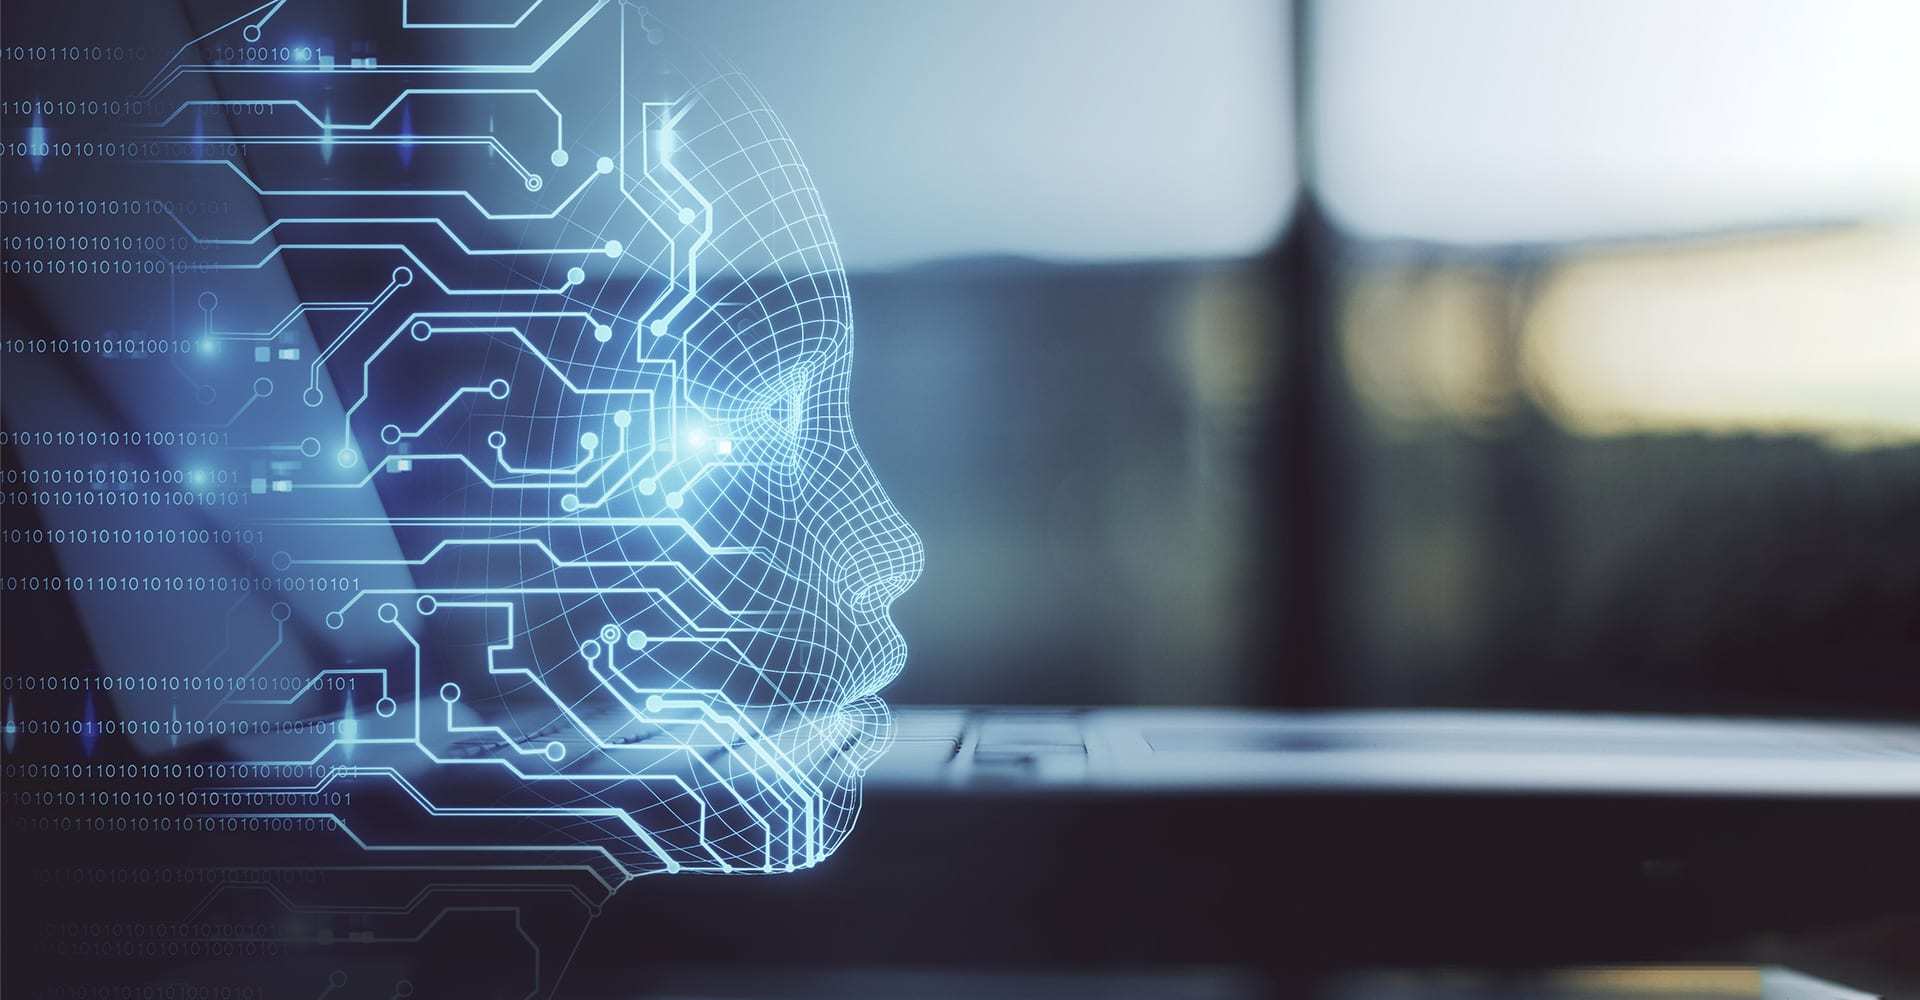 How to Build Trust in AI - DataRobot